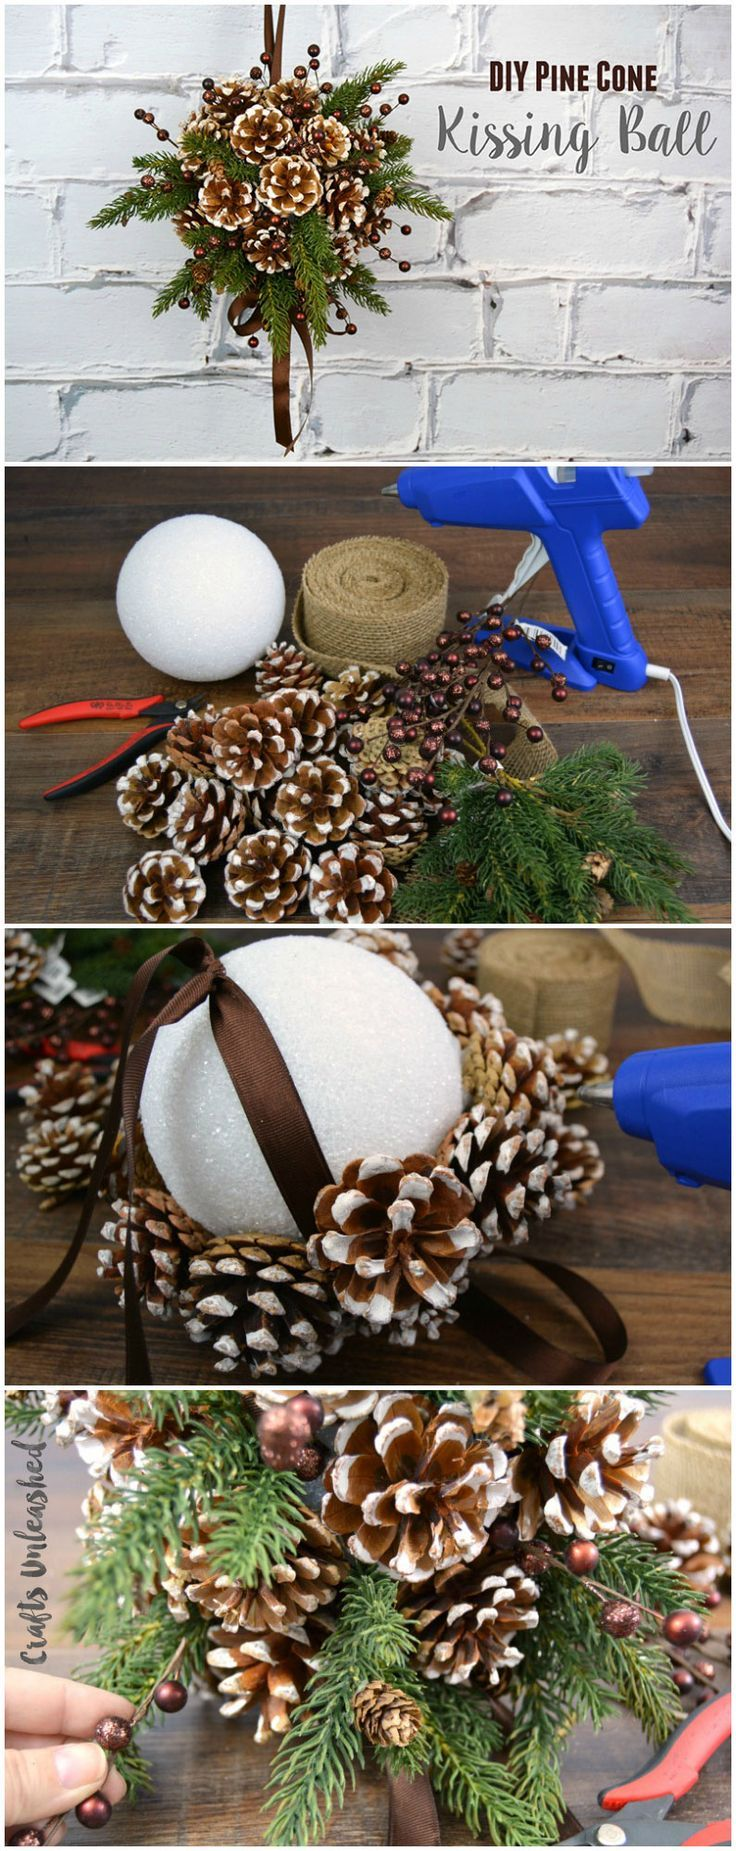 Need an alternative to the traditional winter wreath? This beautiful pine cone DIY kissing ball is the perfect option - we'll show you how to make your own! repinned by www.landfrauenverband-wh.de #landfrauen #landfrauenwüho #landfrauenbw